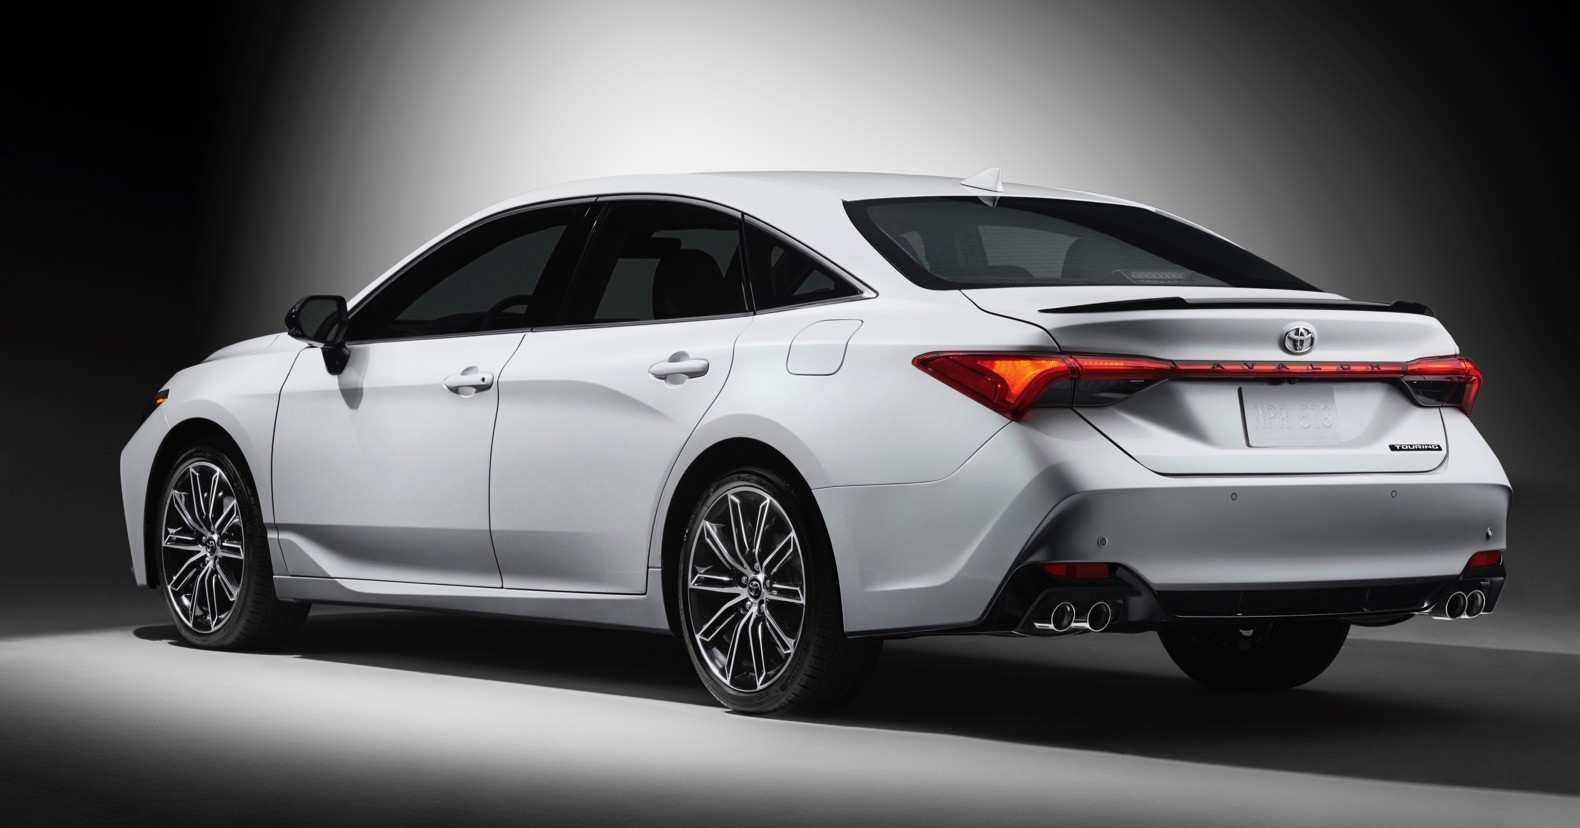 59 All New New Toyota Avalon 2019 Review Exterior And Interior Review Photos for New Toyota Avalon 2019 Review Exterior And Interior Review